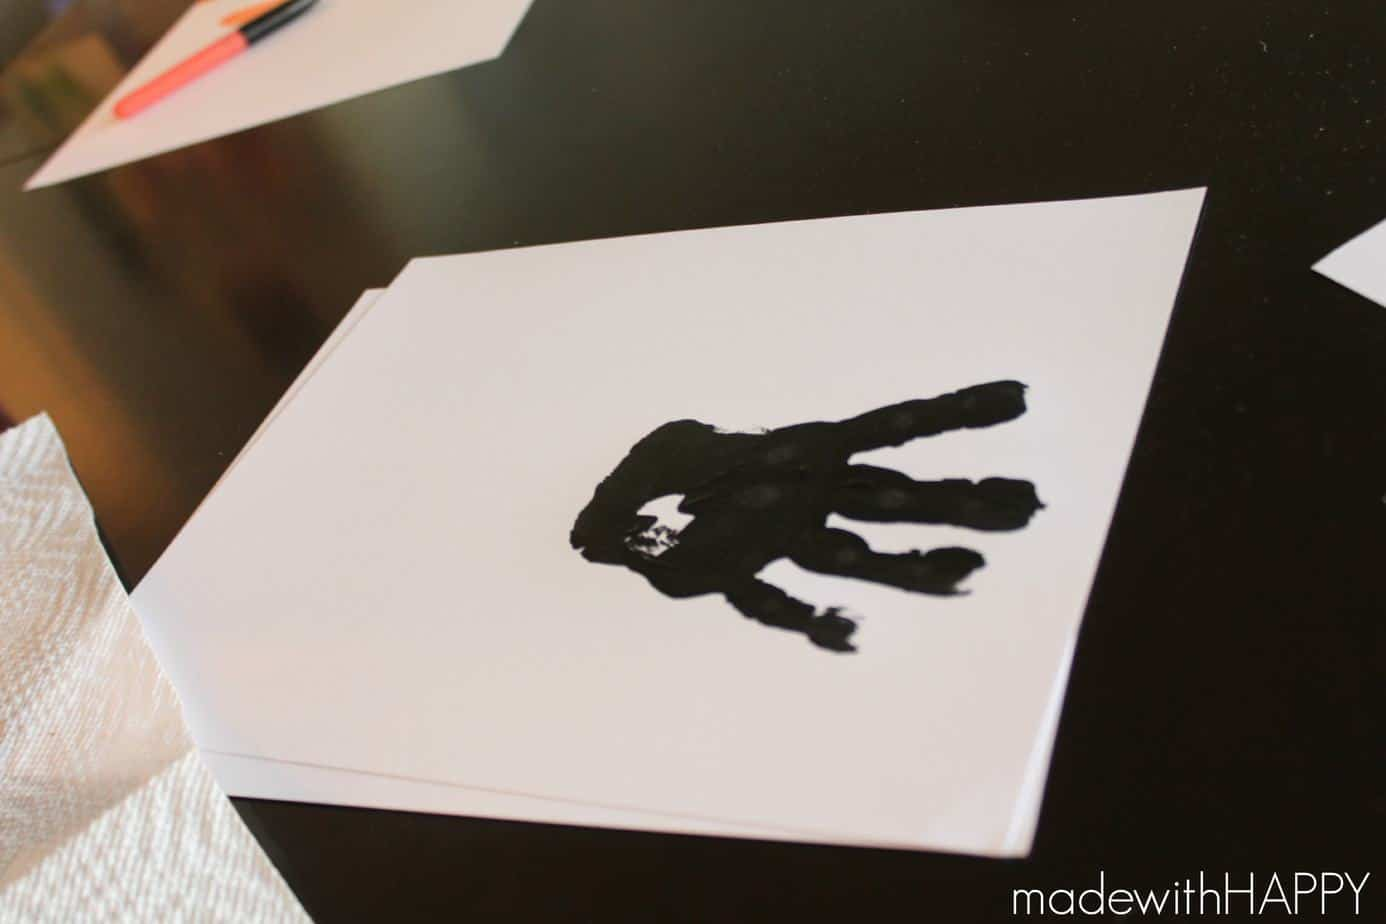 hand print in black paint